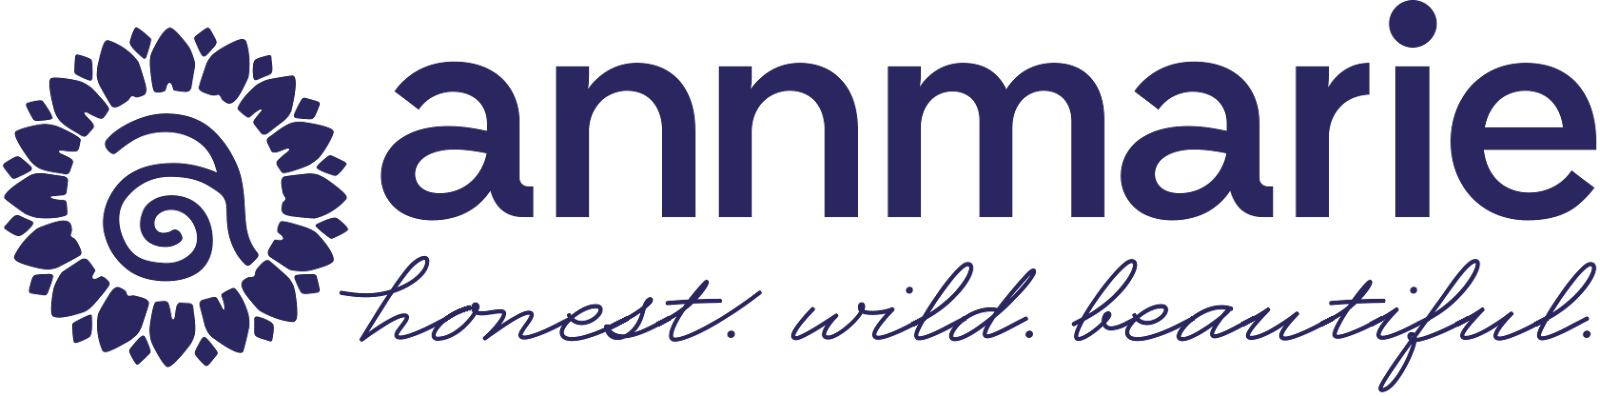 annmarie-gianni-skincare-logo.png